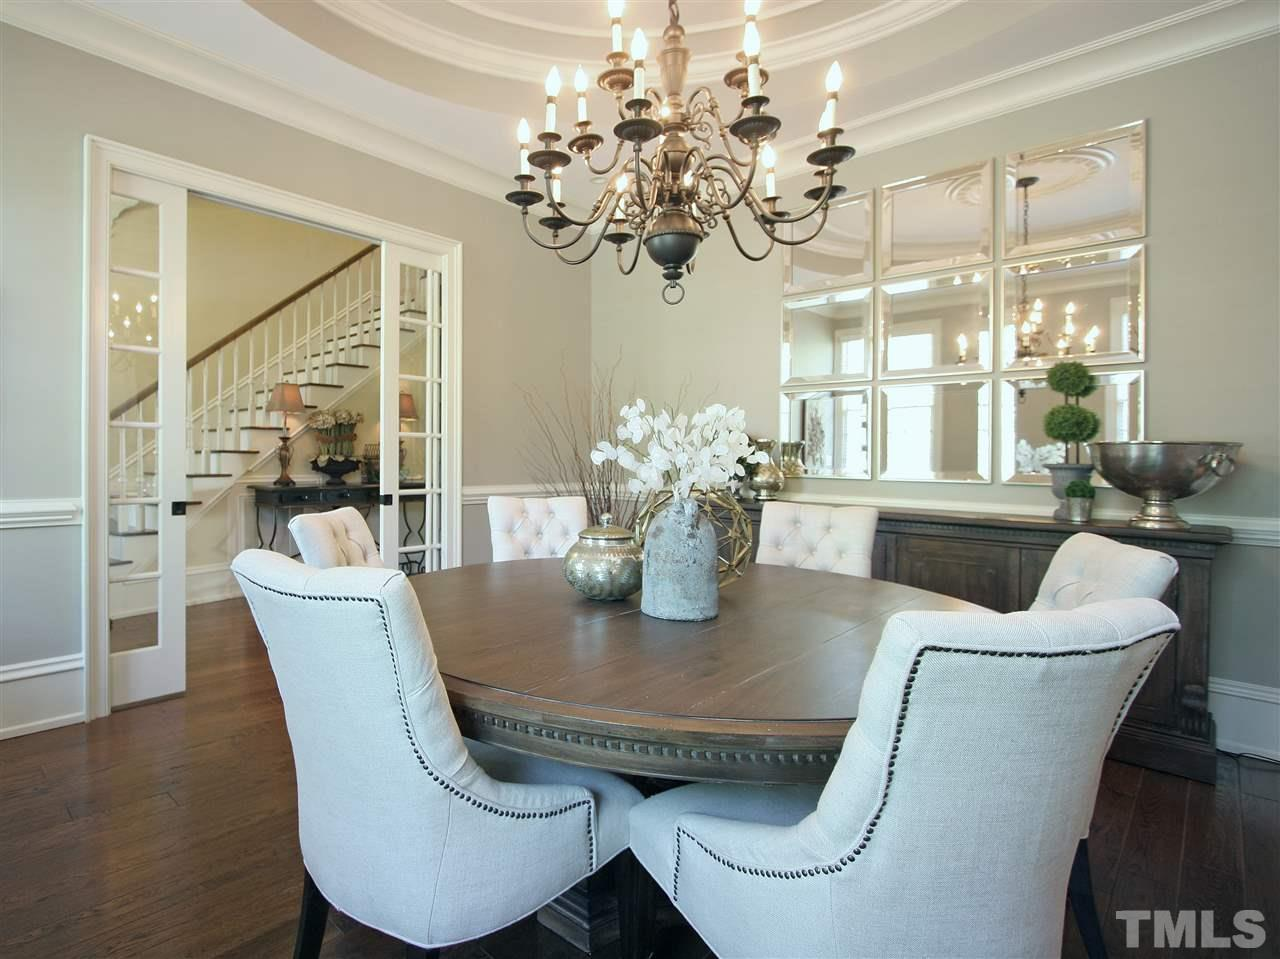 The formal dining room is spacious and affords plenty of room for your larger furniture pieces. This room is accessed from the foyer and also directly from the kitchen.